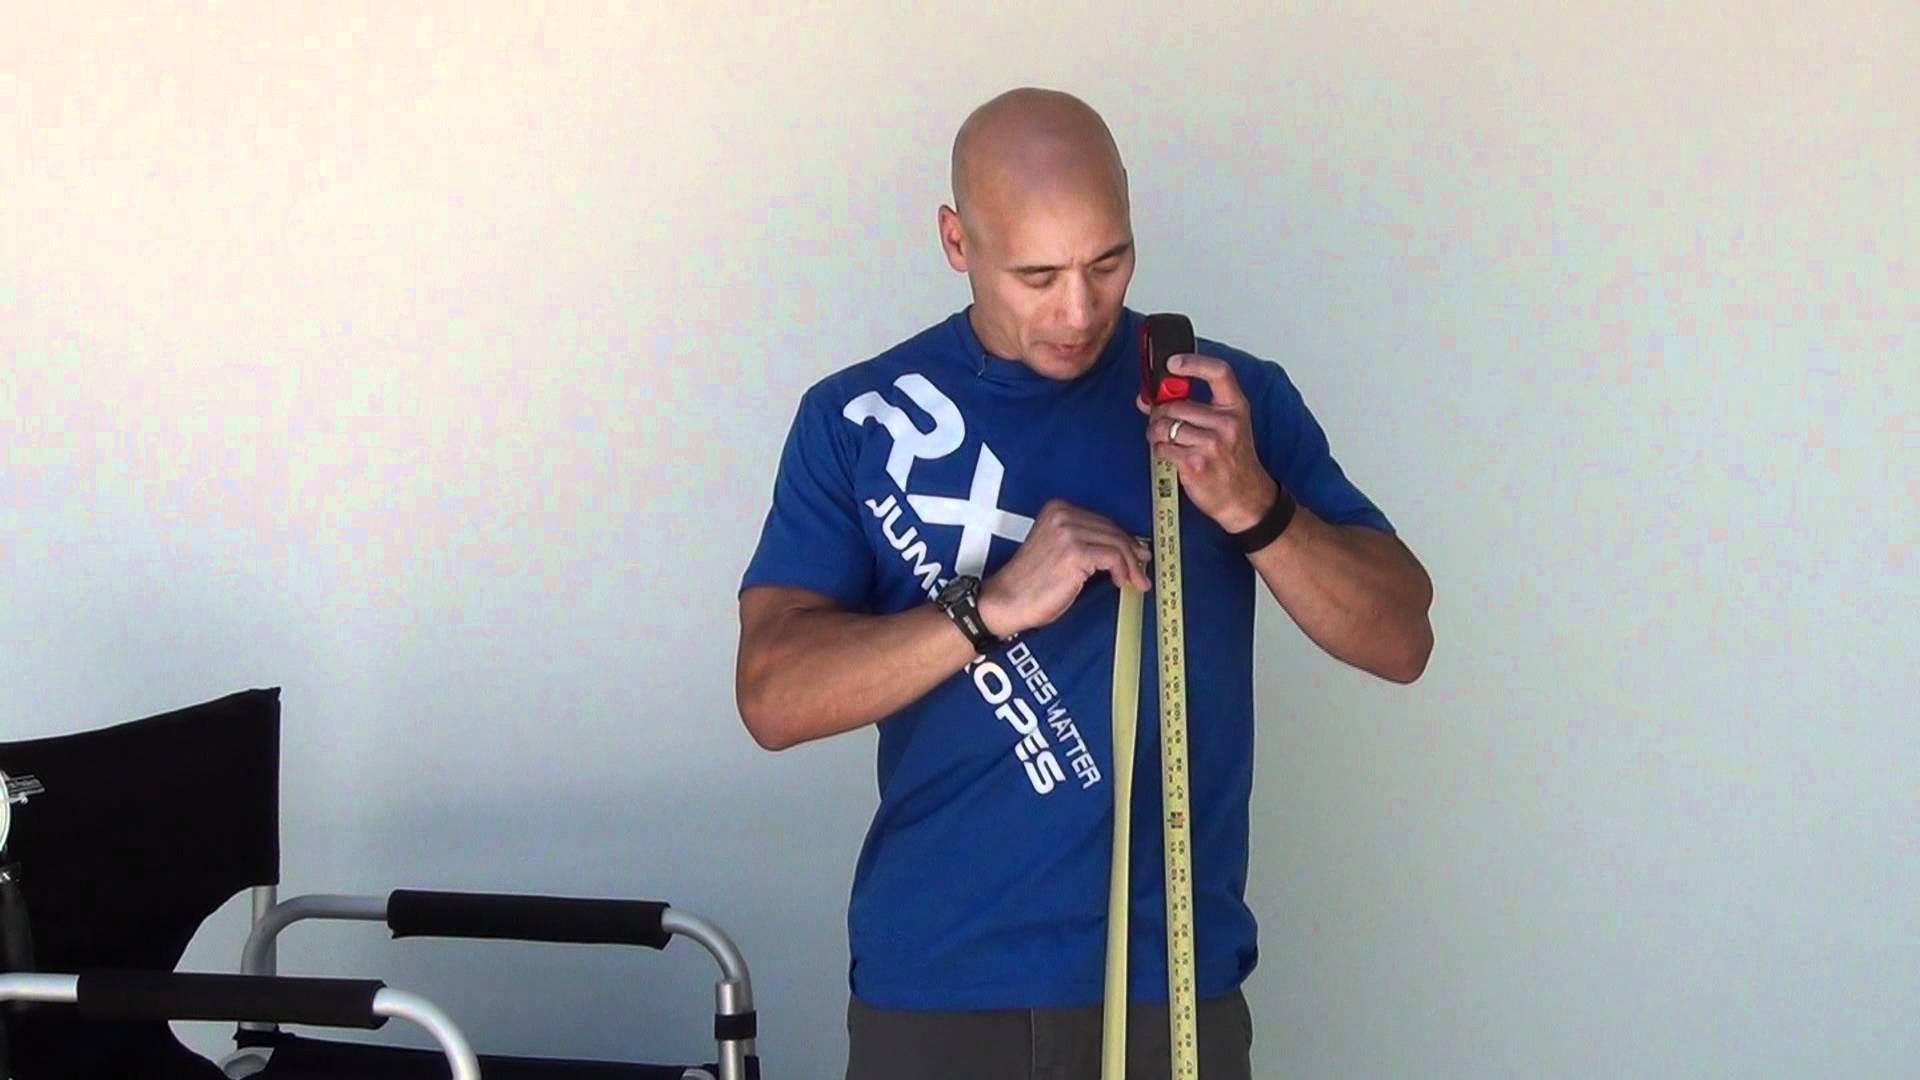 How to measure for your rx jump rope jump rope rx jump